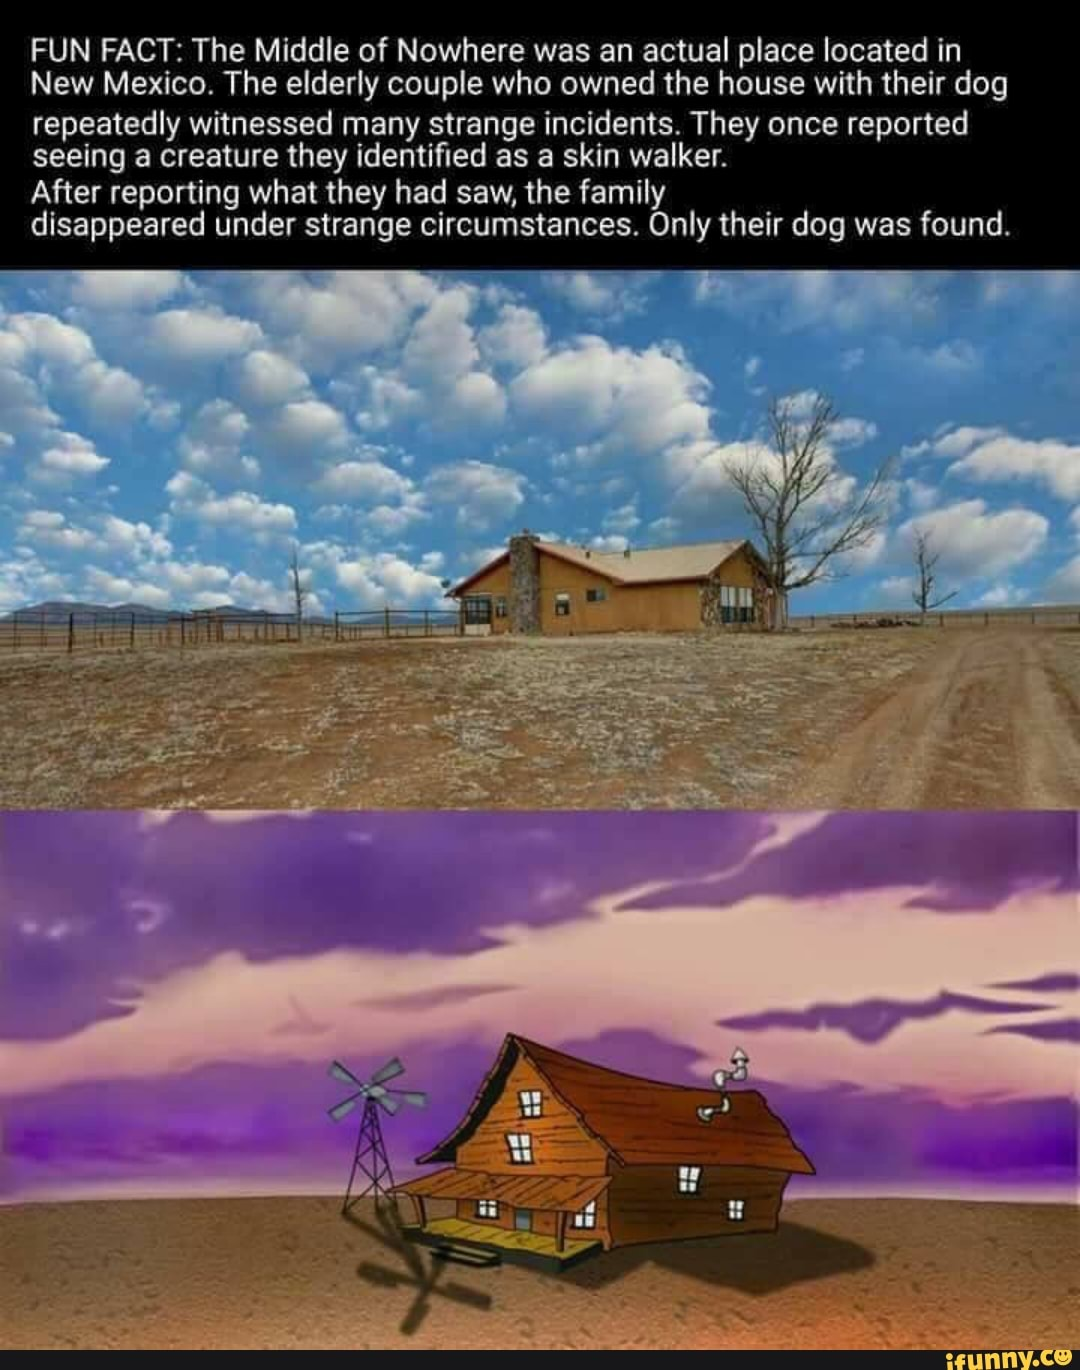 The Middle Of Nowhere New Mexico : middle, nowhere, mexico, FACT:, Middle, Nowhere, Actual, Place, Located, Mexico., Elderly, Couple, Owned, House, Their, Repeatedly, Witnessed, Strange, Incidents., Reported